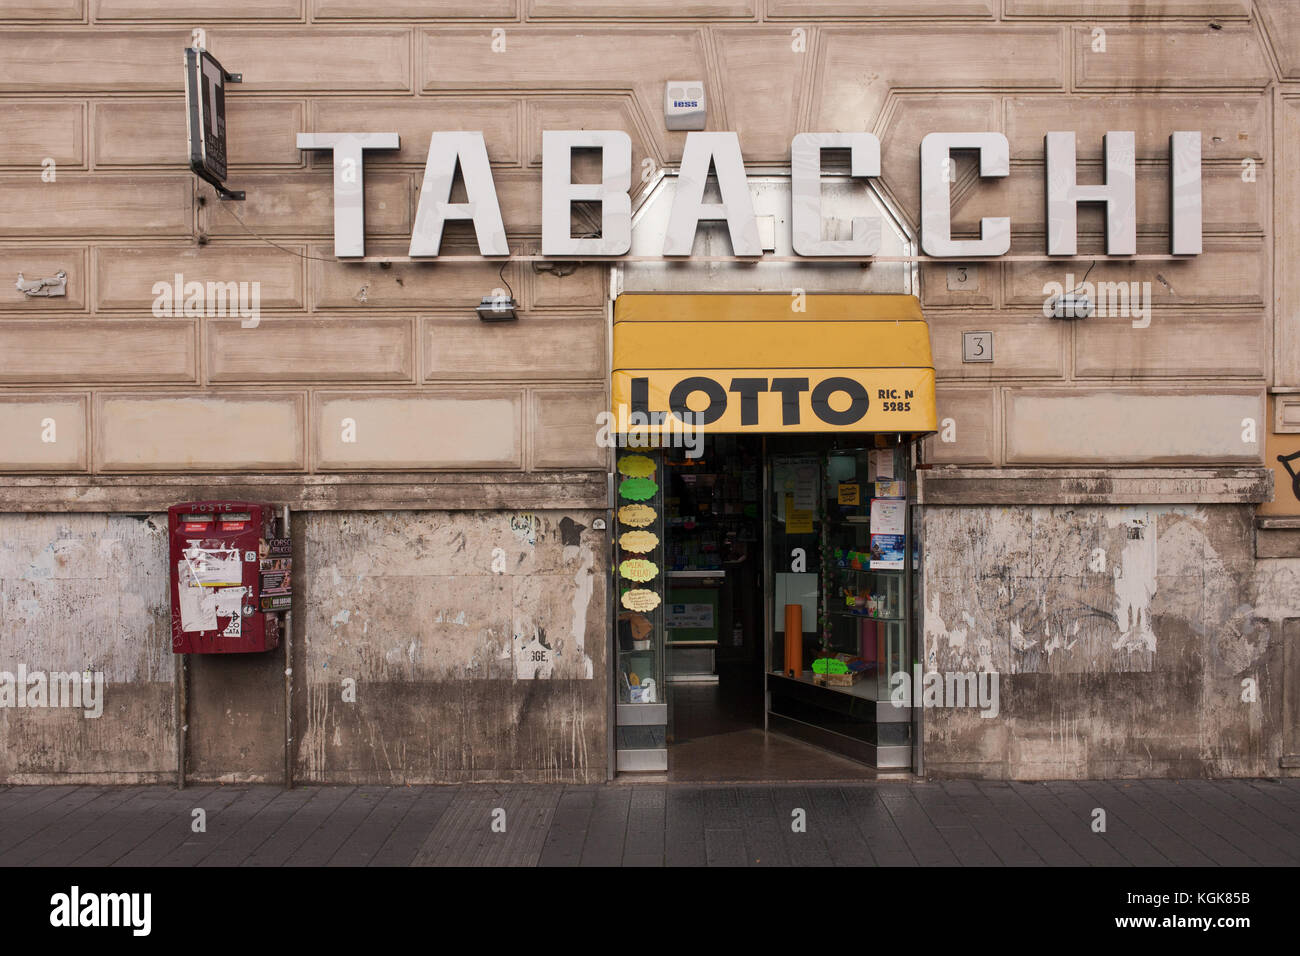 Tabac shop stockfotos tabac shop bilder alamy